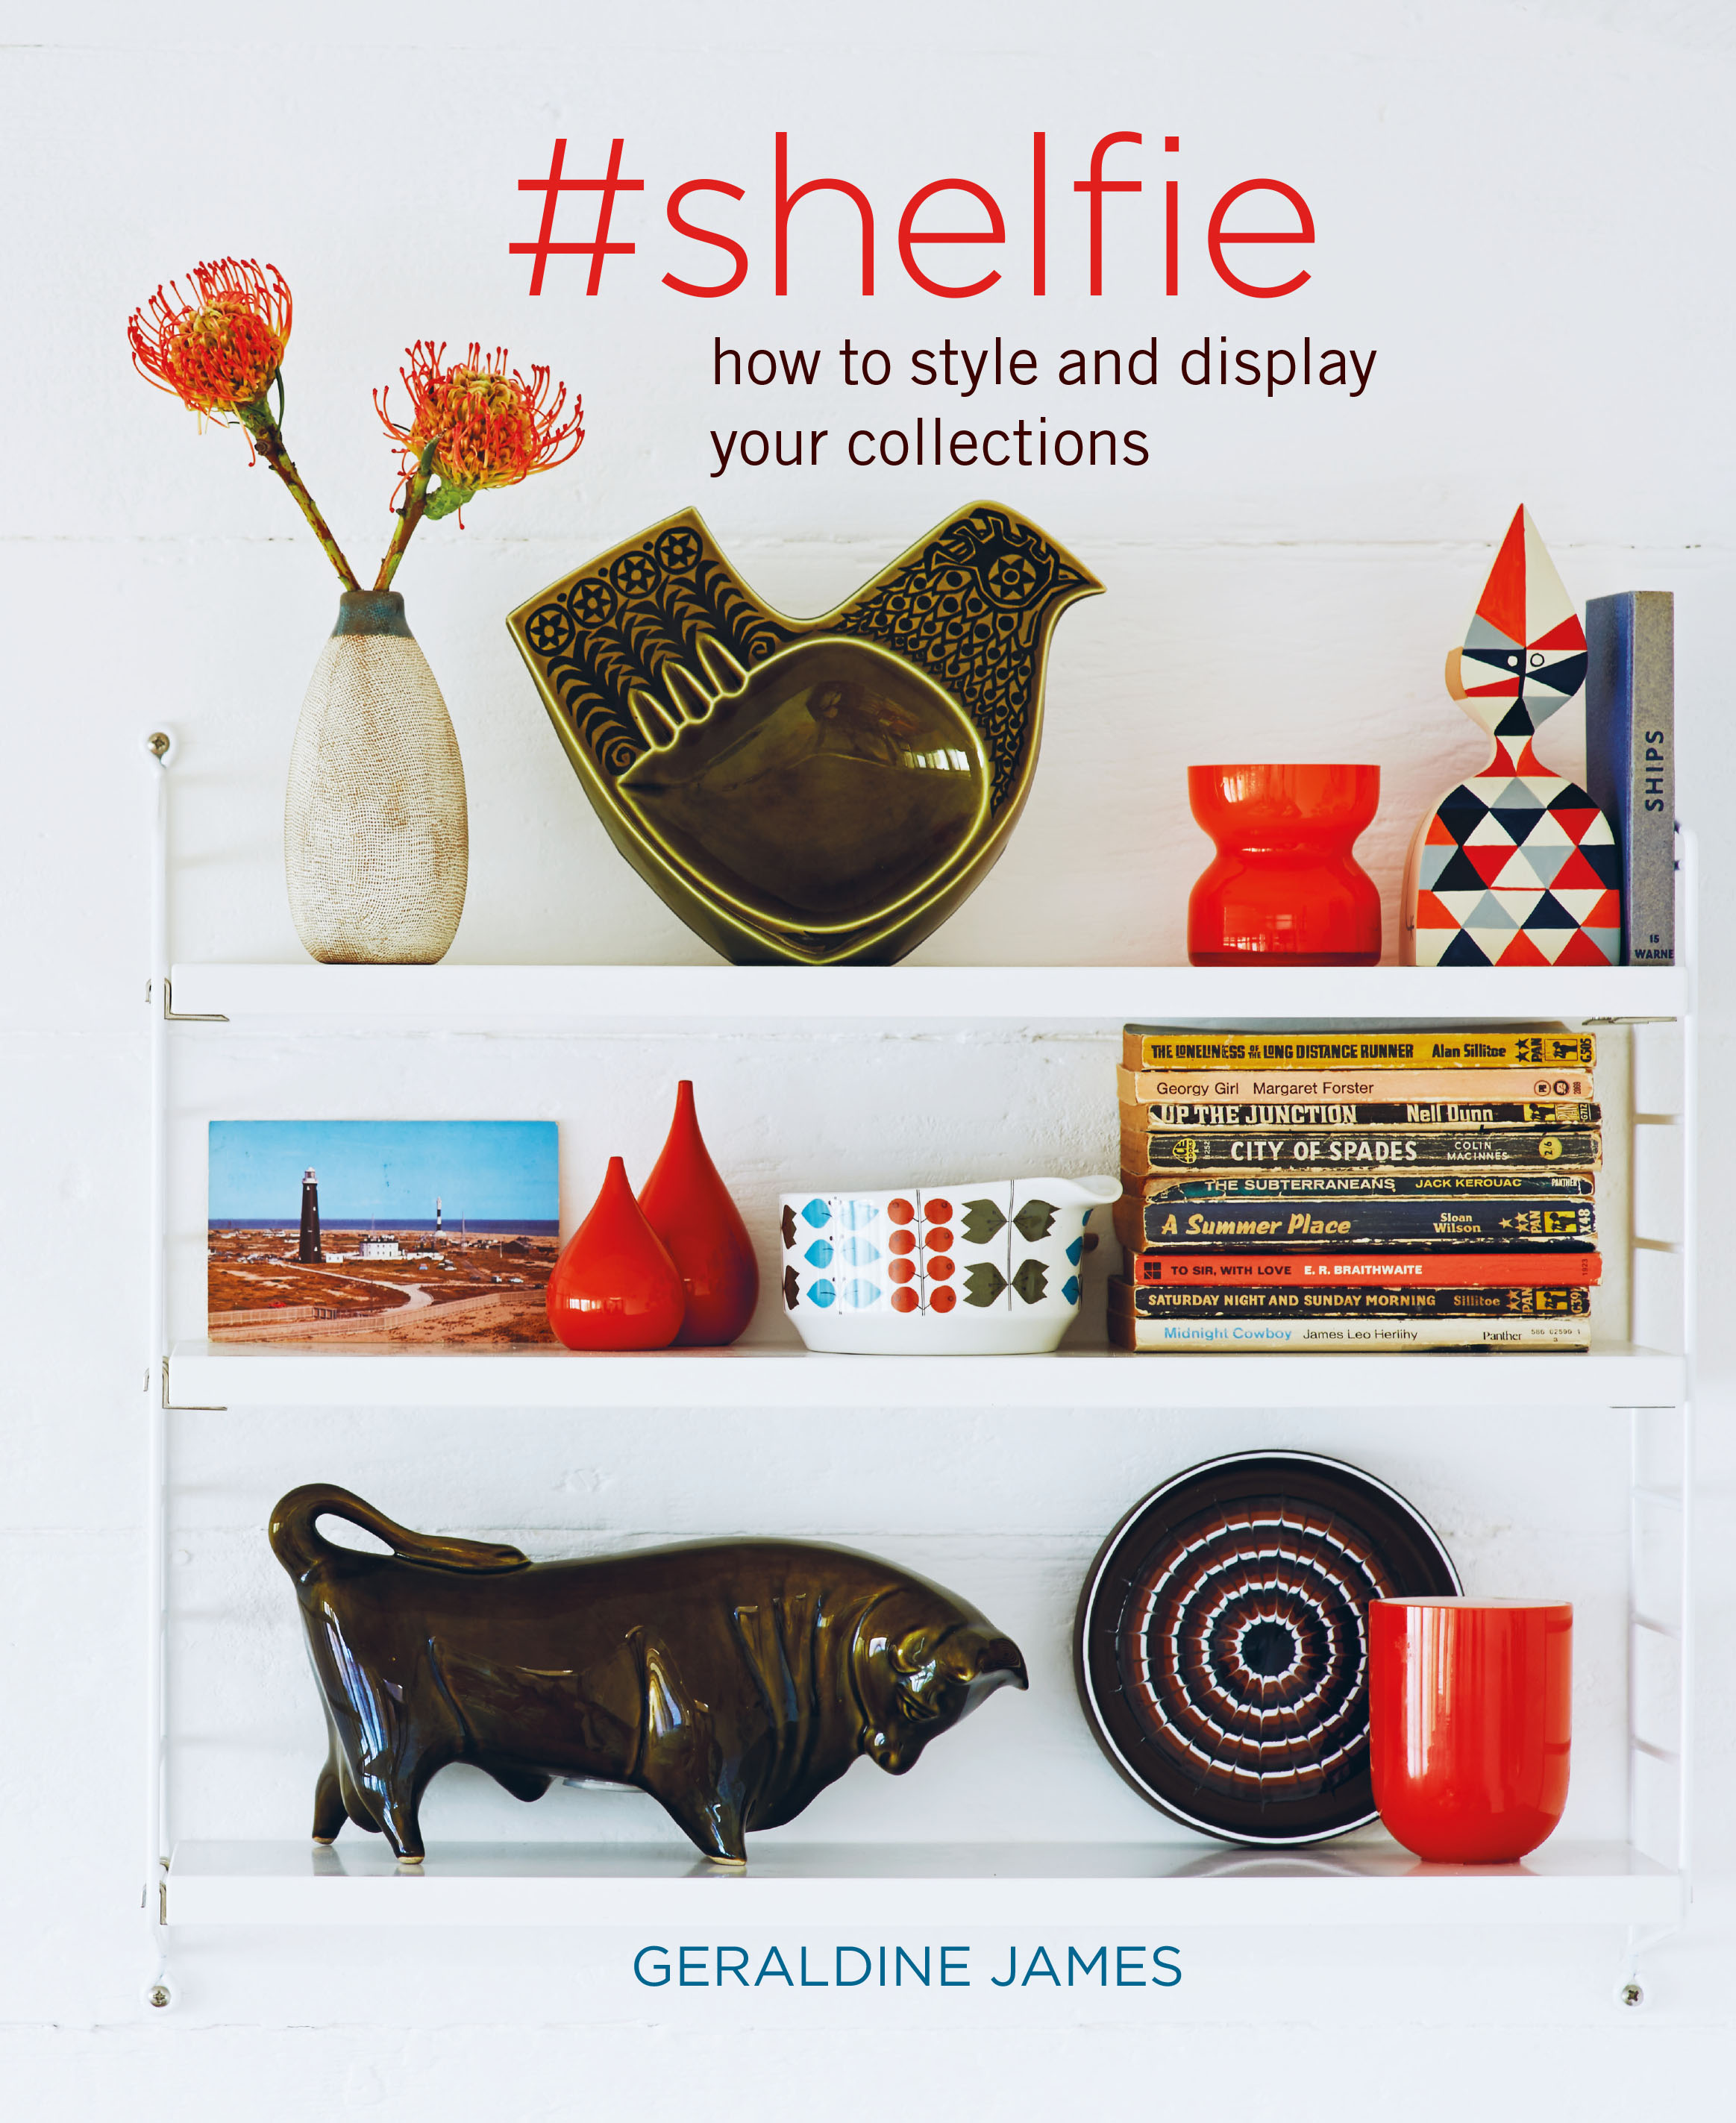 #shelfie How to style and display your collections